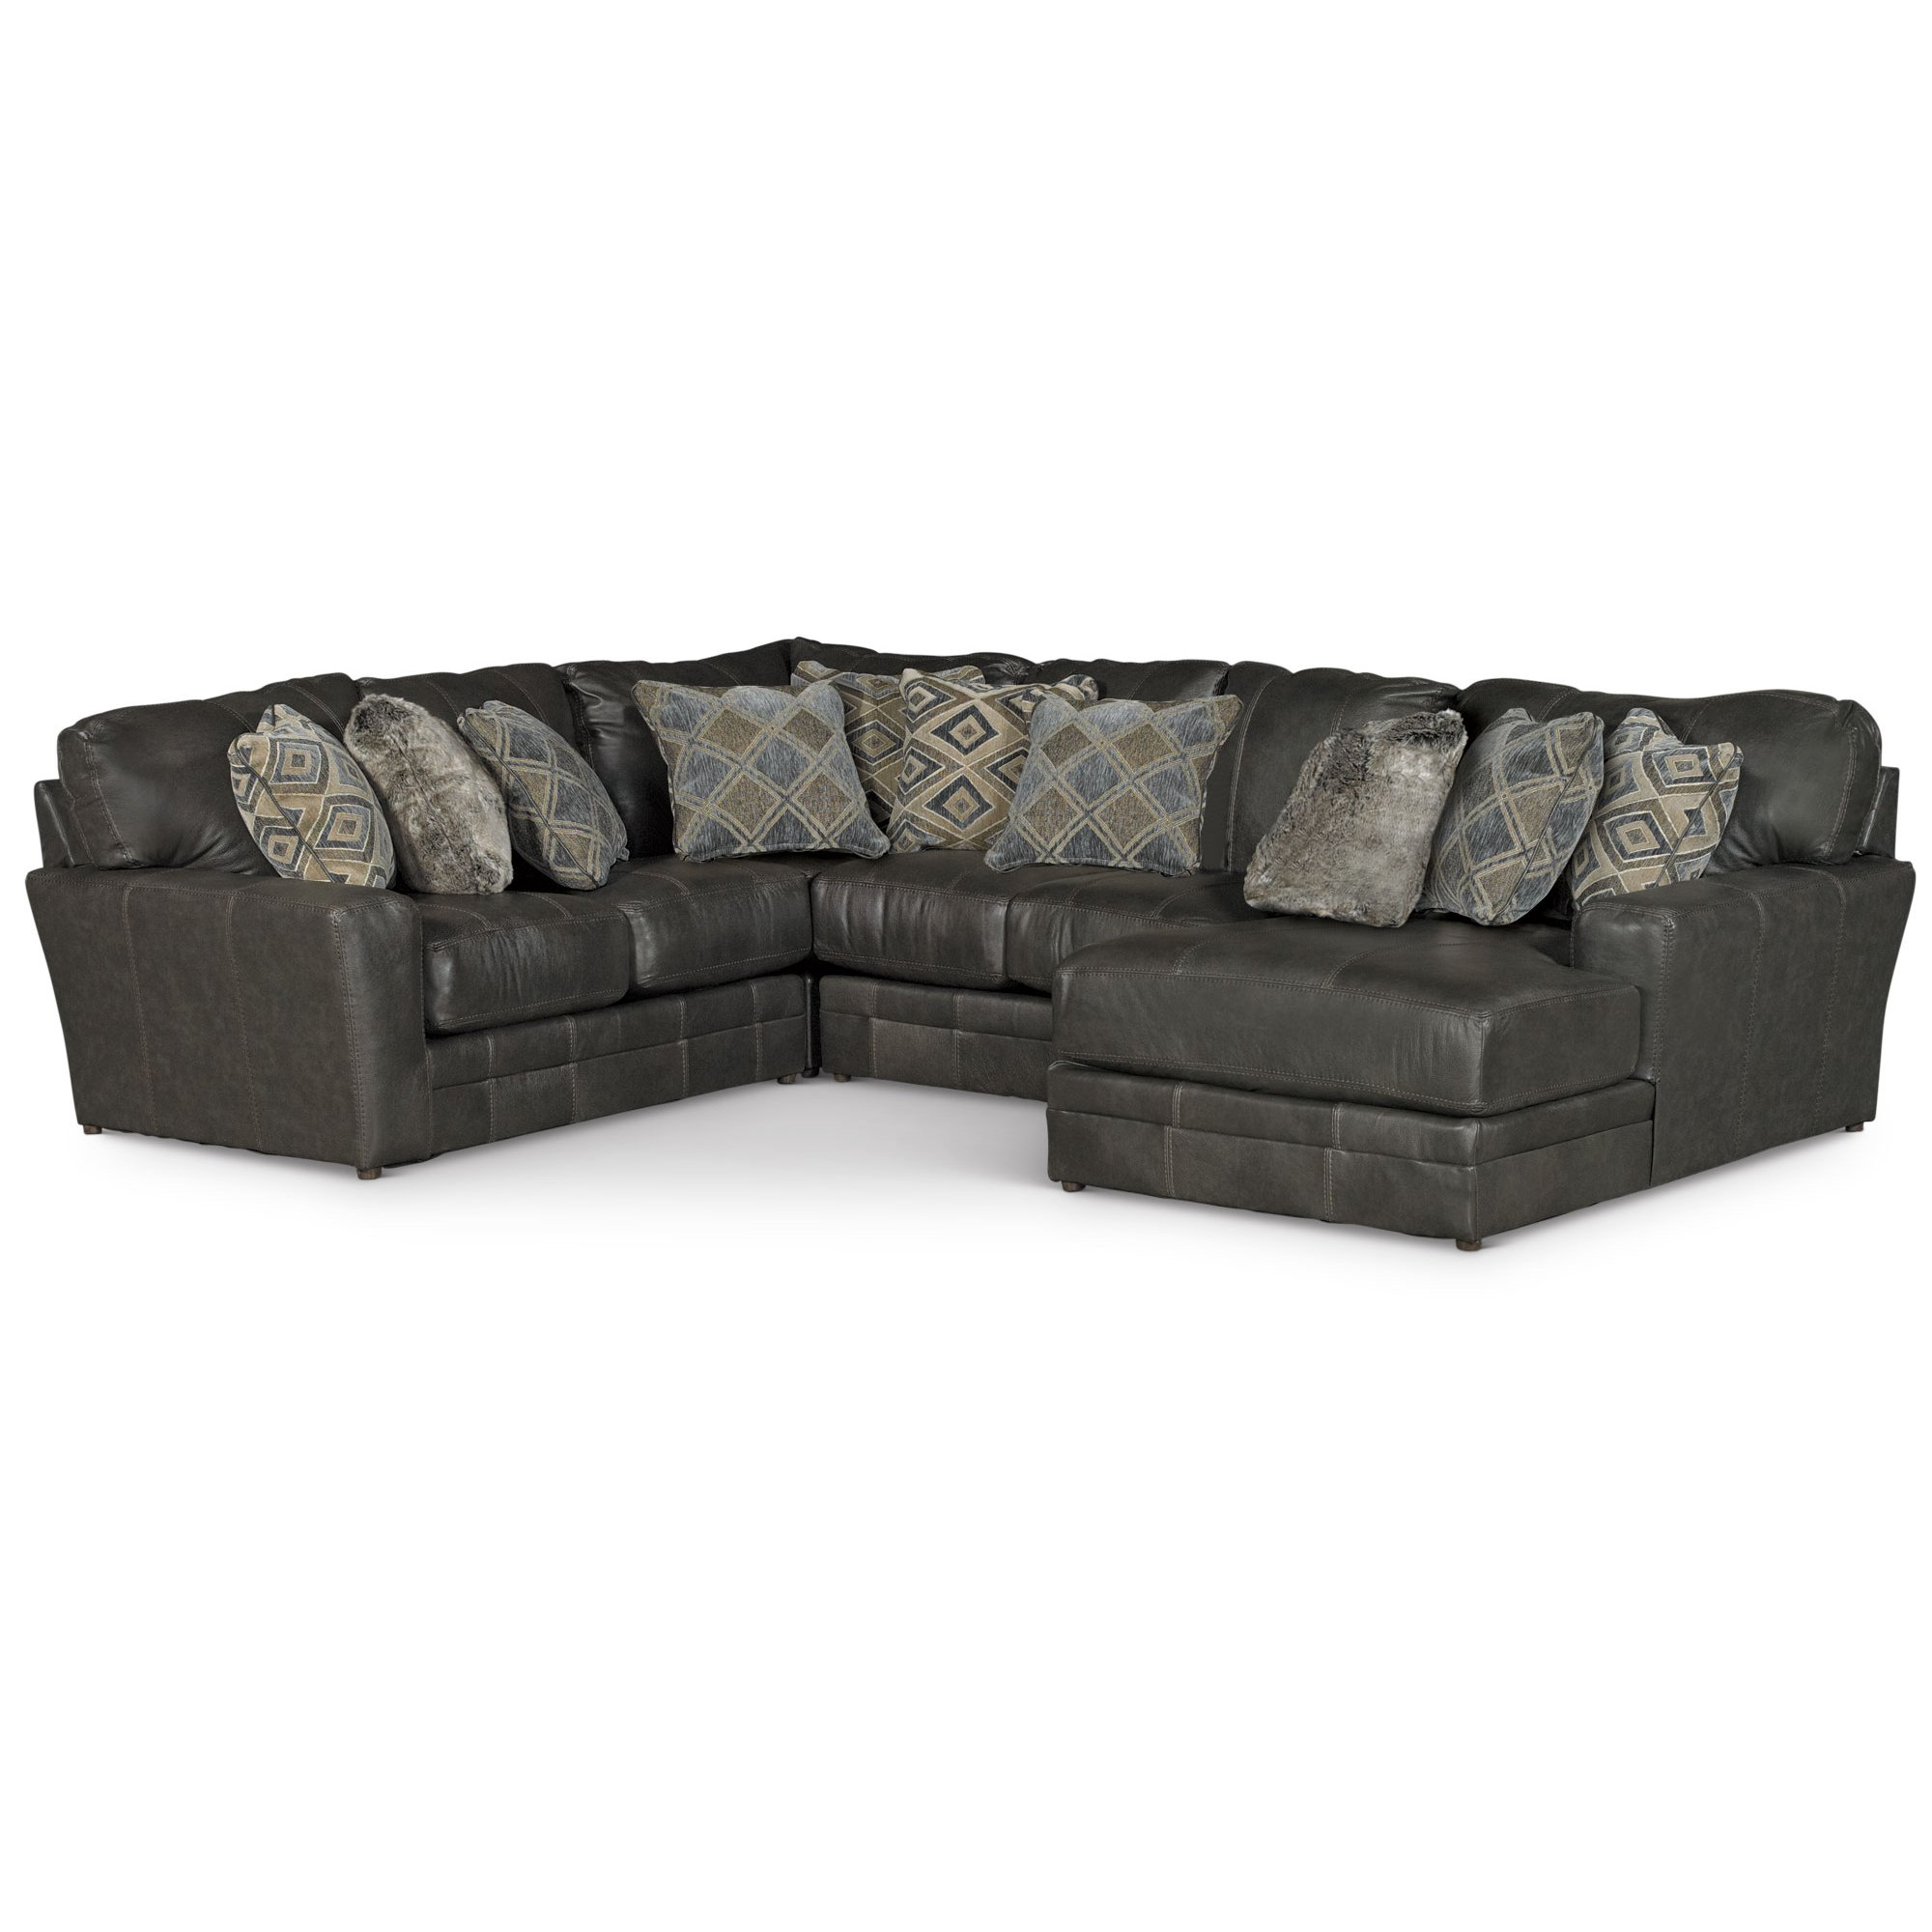 Casual Classic Steel Gray Leather Match 4 Piece Sectional Denali